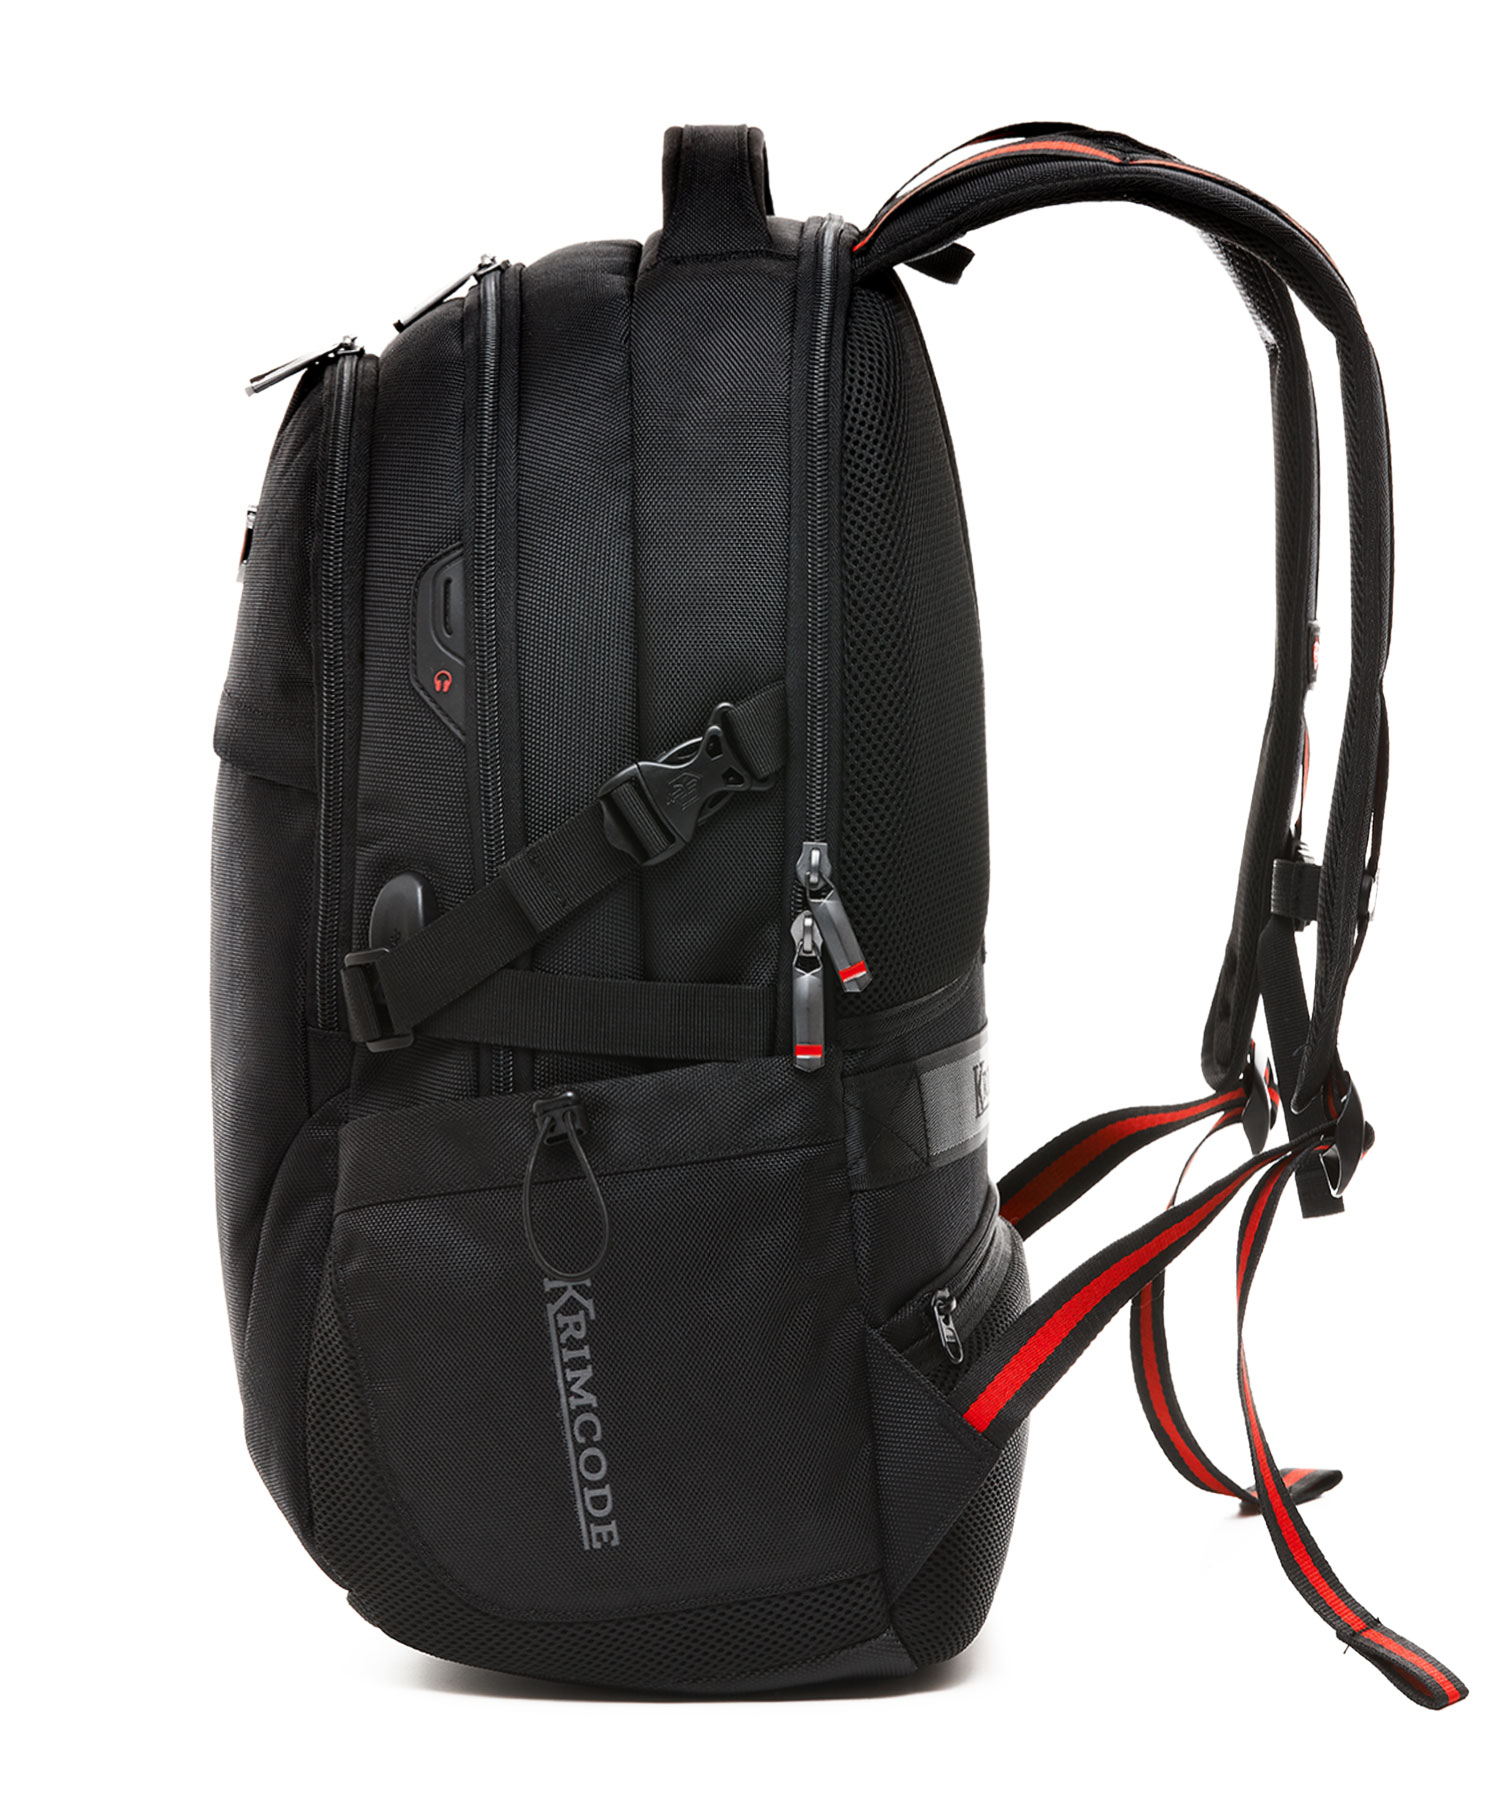 krimcode backpack side view